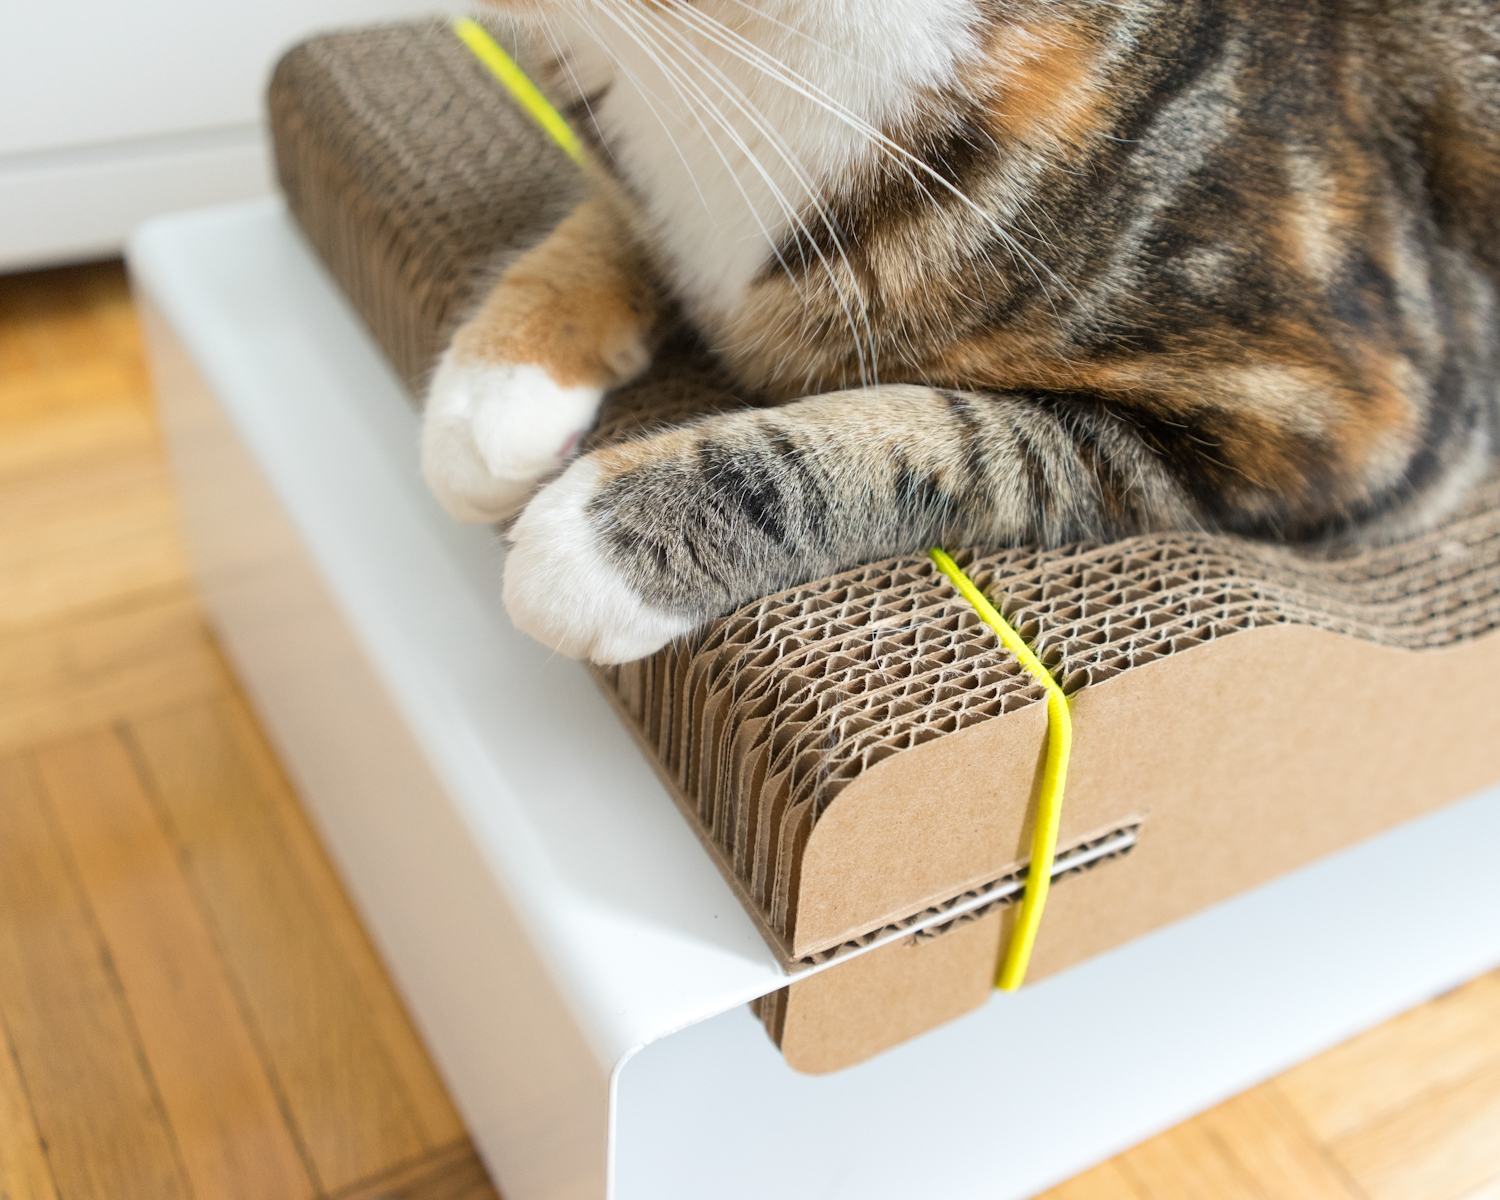 ELASTIC - Our patent pending elastic strap design means the individual cardboard layers are not glued together. This makes for a simpler product with less waste. You can even switch or move damaged layers to keep The Corr Lounge looking like new.